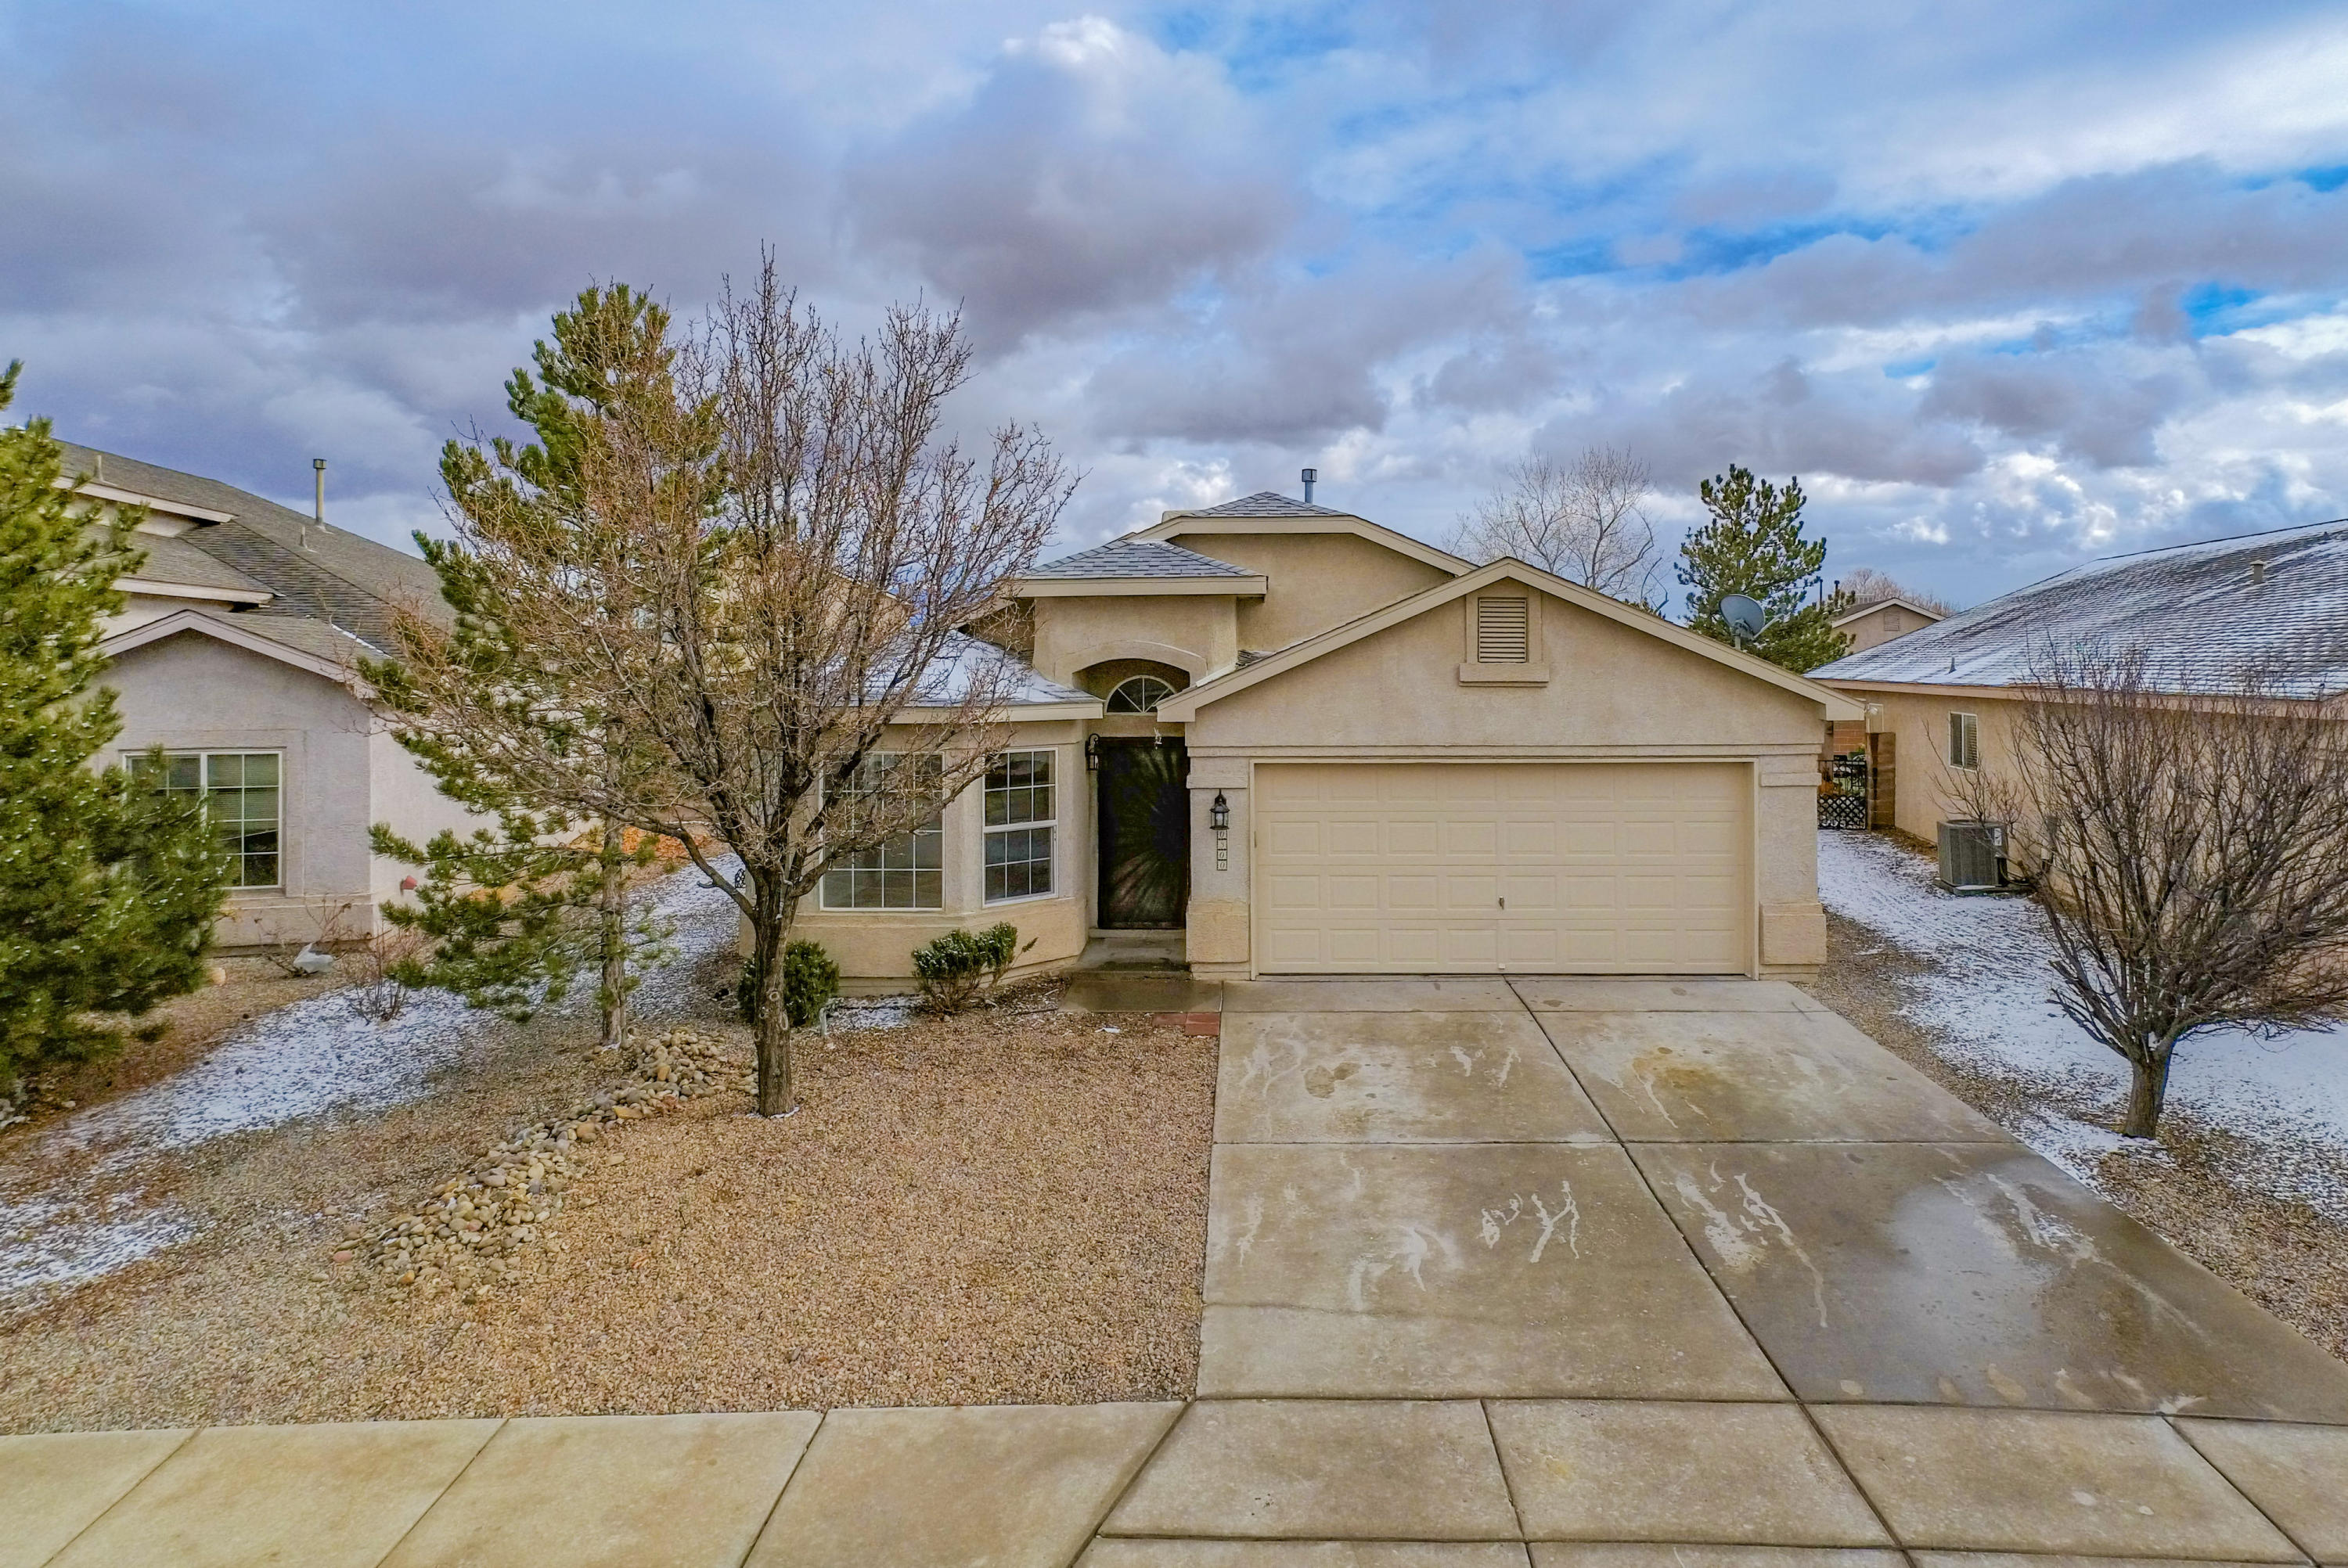 Lovely Home in the desirable Ventana Ranch area! It has 4 to 5 bedrooms. The 2nd living area has French doors and a closet added that can also be a large fifth bedroom. The master suite is spacious with a full bath to include a garden tub and walk in closet. There are three other bedrooms to meet all of your needs. The kitchen is open to the family room with an island, a breakfast nook and a large pantry. All of the kitchen appliances stay. The spacious back yard has a covered patio, and a surrounding brick wall to meet all of your entertaining needs. The roof was redone in November of 2020 and has a warranty. The home has been freshly painted in January of 2021. This home is ready for it's new owners! Schedule an appointment today.